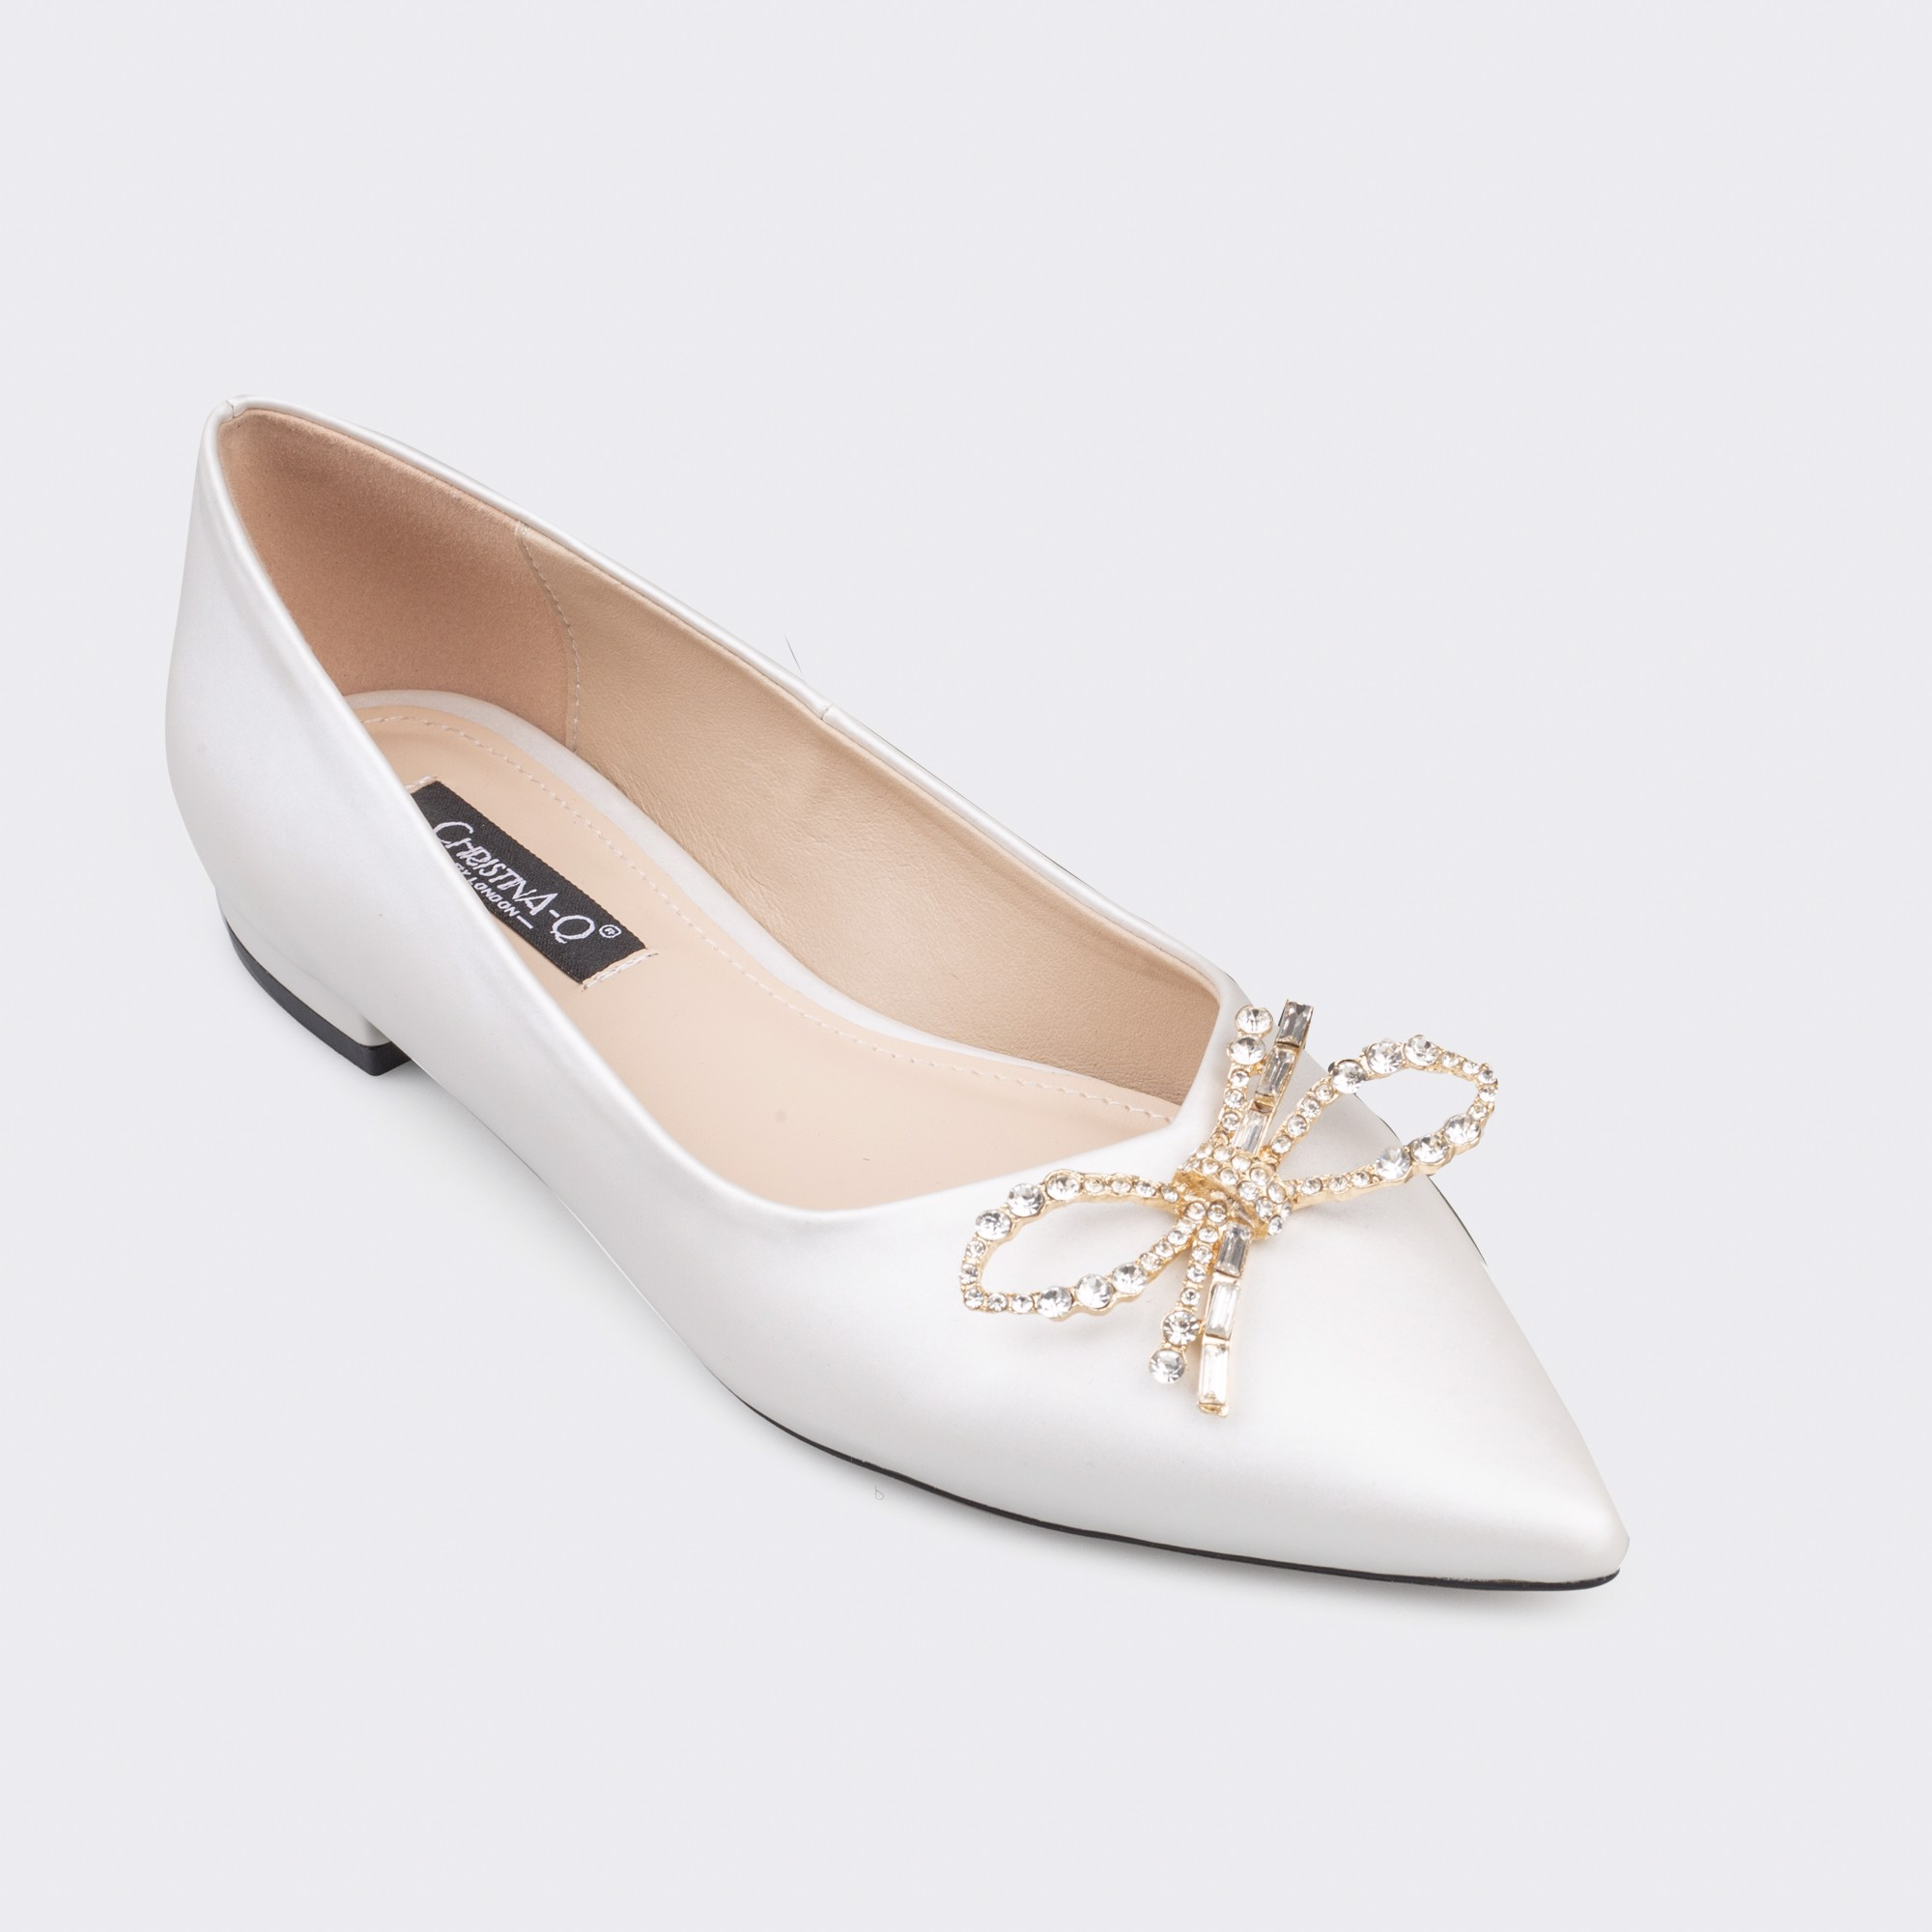 LUXURY - WEDDING SHOES & BRIDAL SHOES GIÀY CƯỚI CAO CẤP ĐẾ BỆT CHRISTINA-Q GBB164